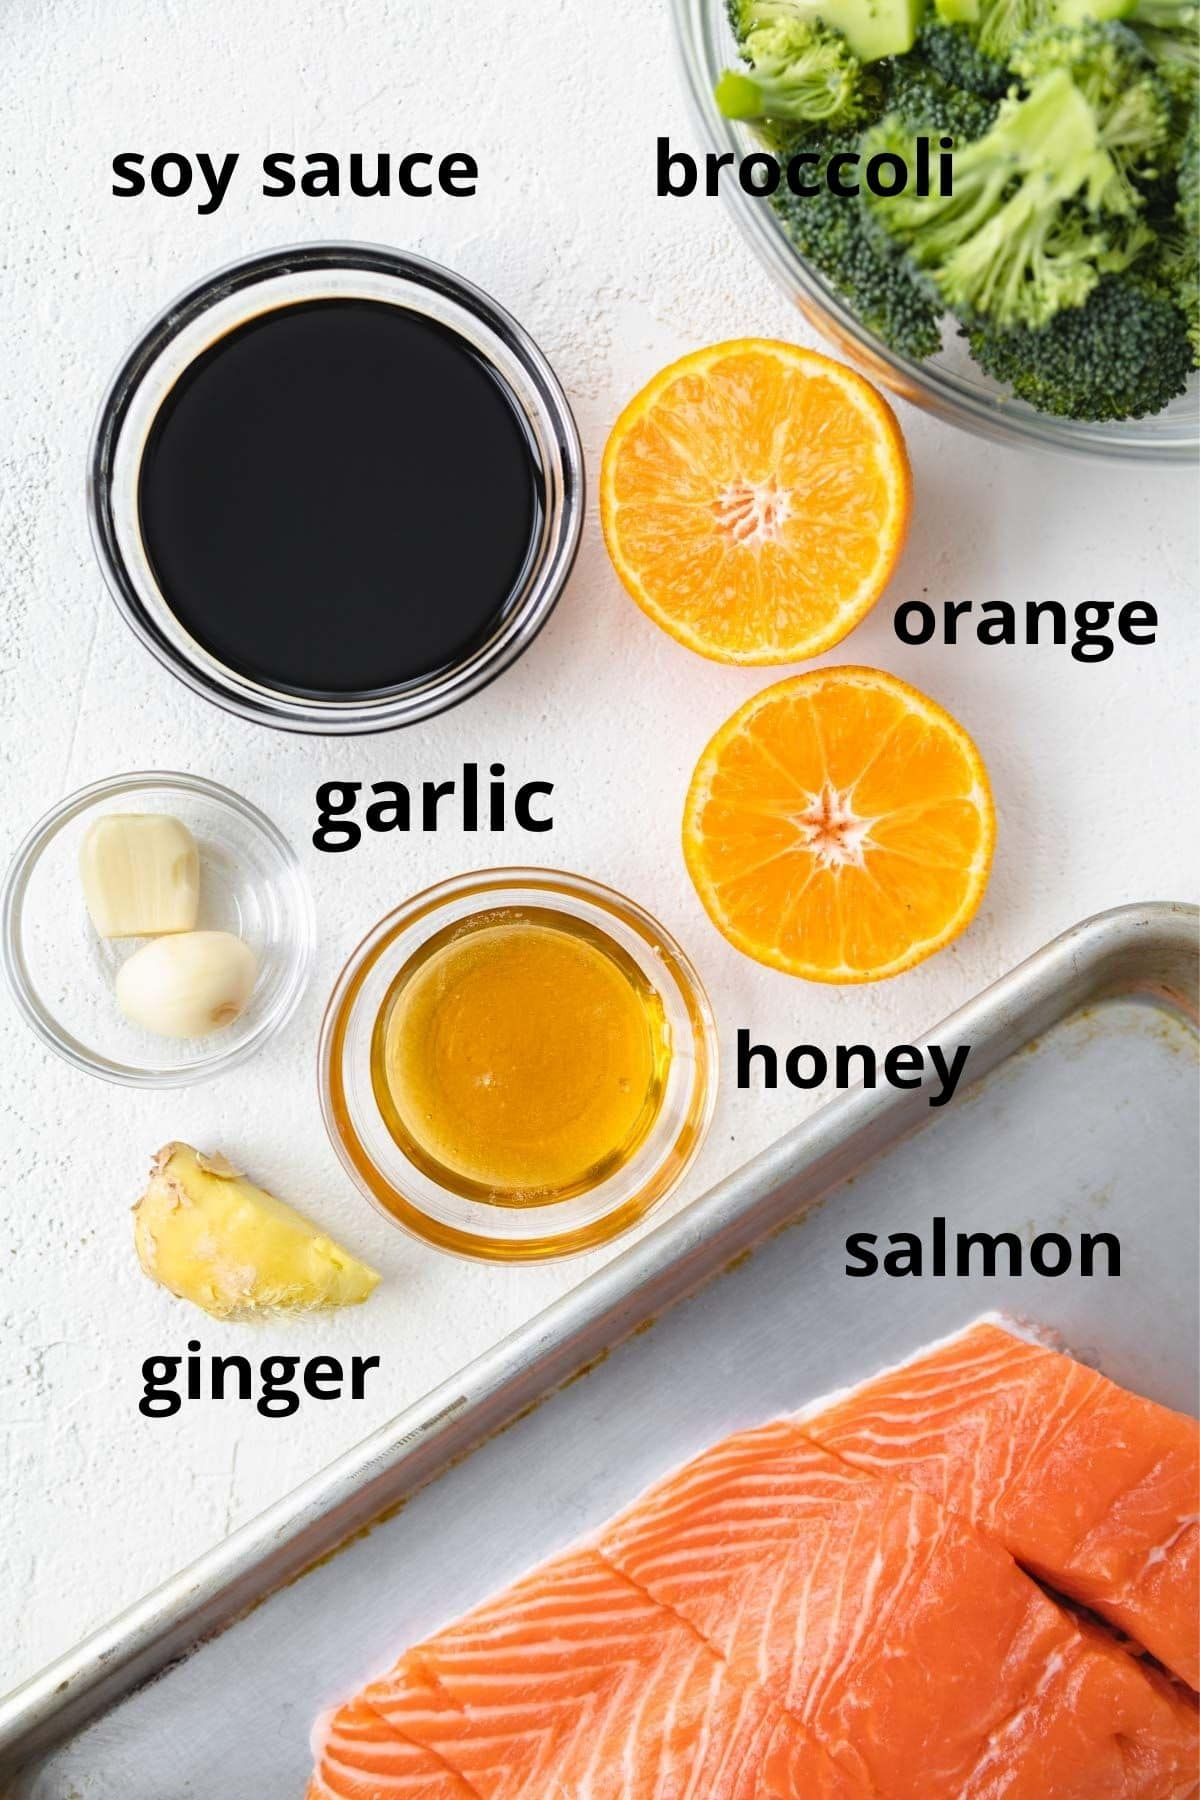 labeled ingredients for this ginger orange salmon sheet pan dinner in separate bowls.